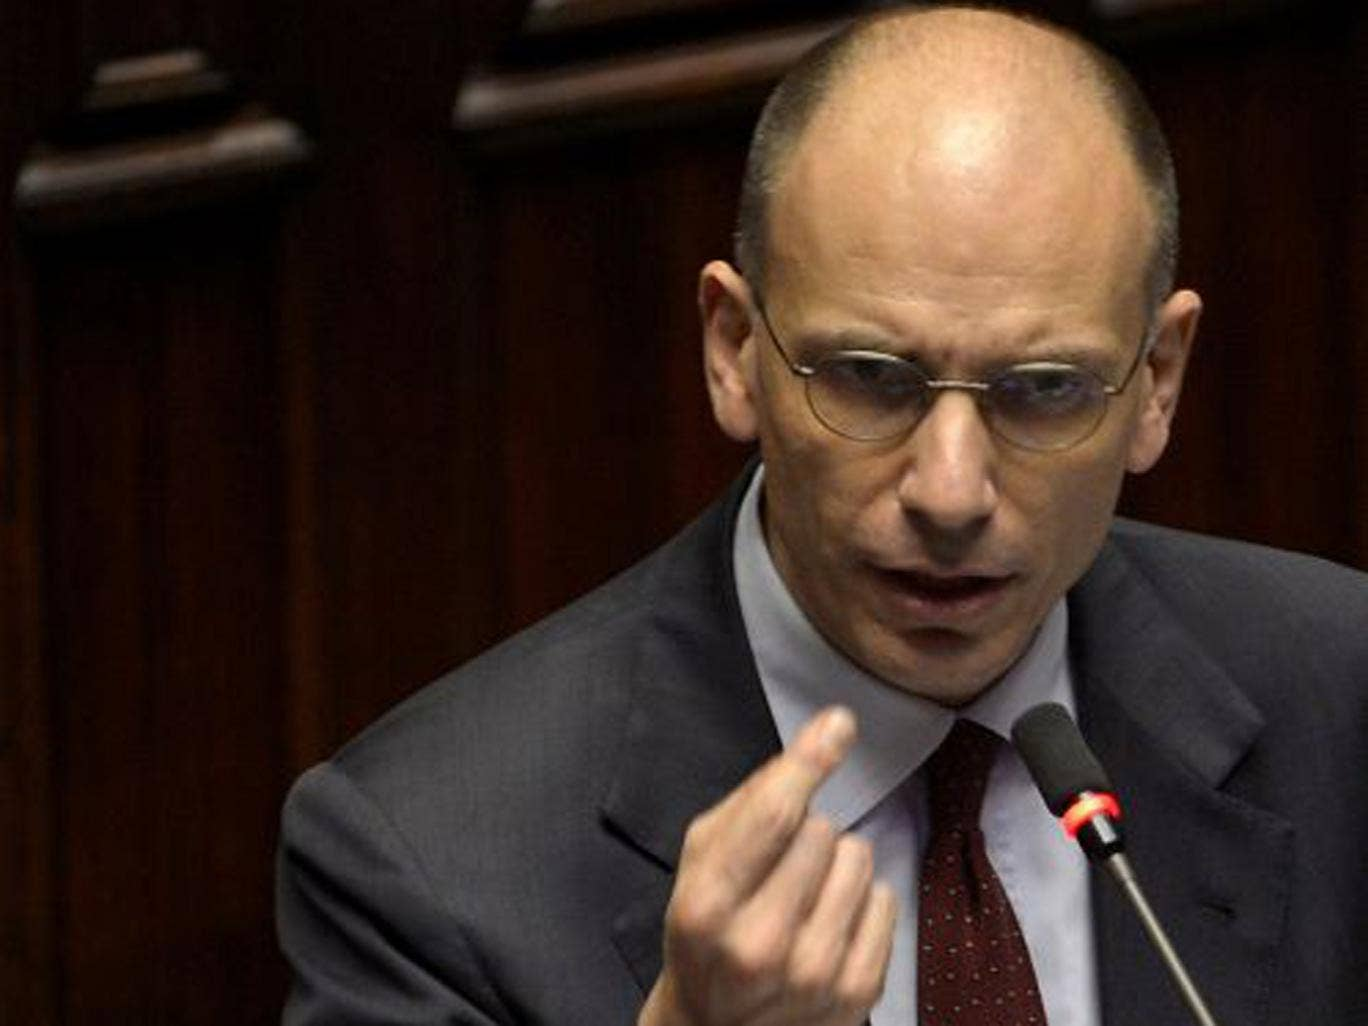 Enrico Letta has said his coalition will ease up on austerity in order to drag the pivotal eurozone economy out of its downward spiral